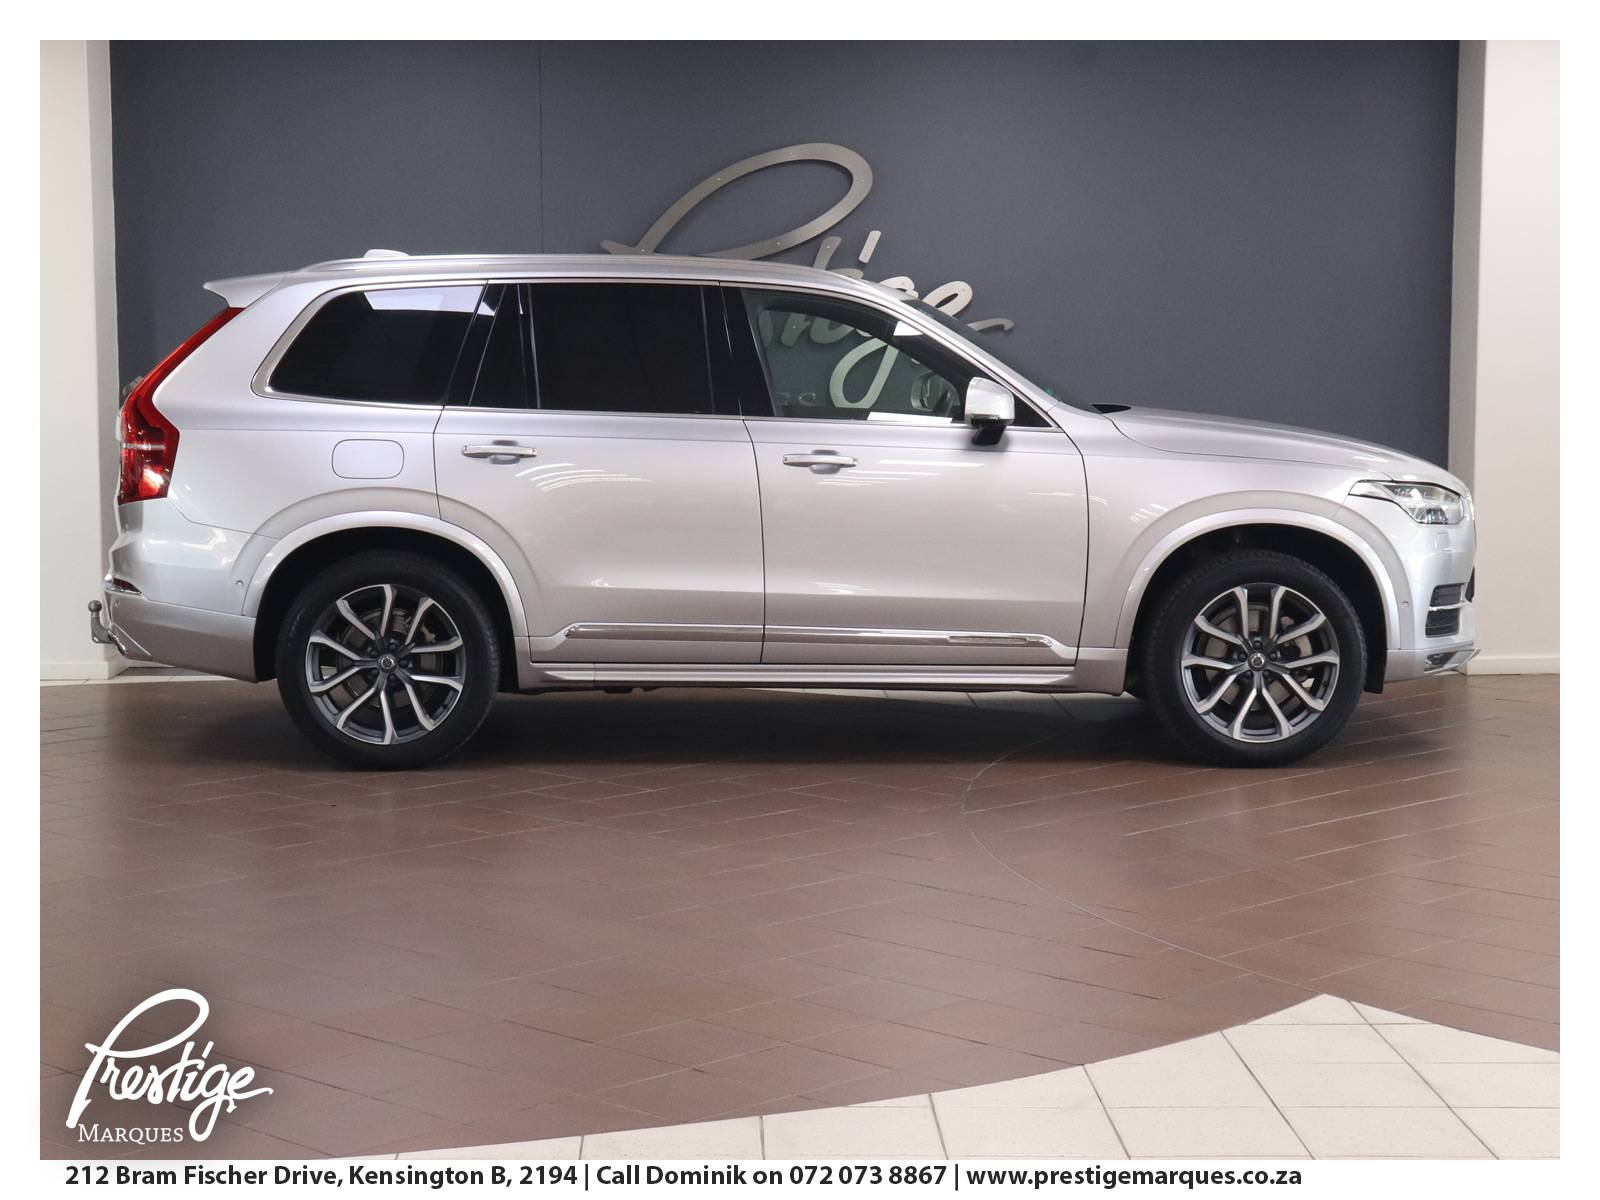 Volvo-XC90-D5-Inscription-Prestige-Marques-Randburg-Sandton-2